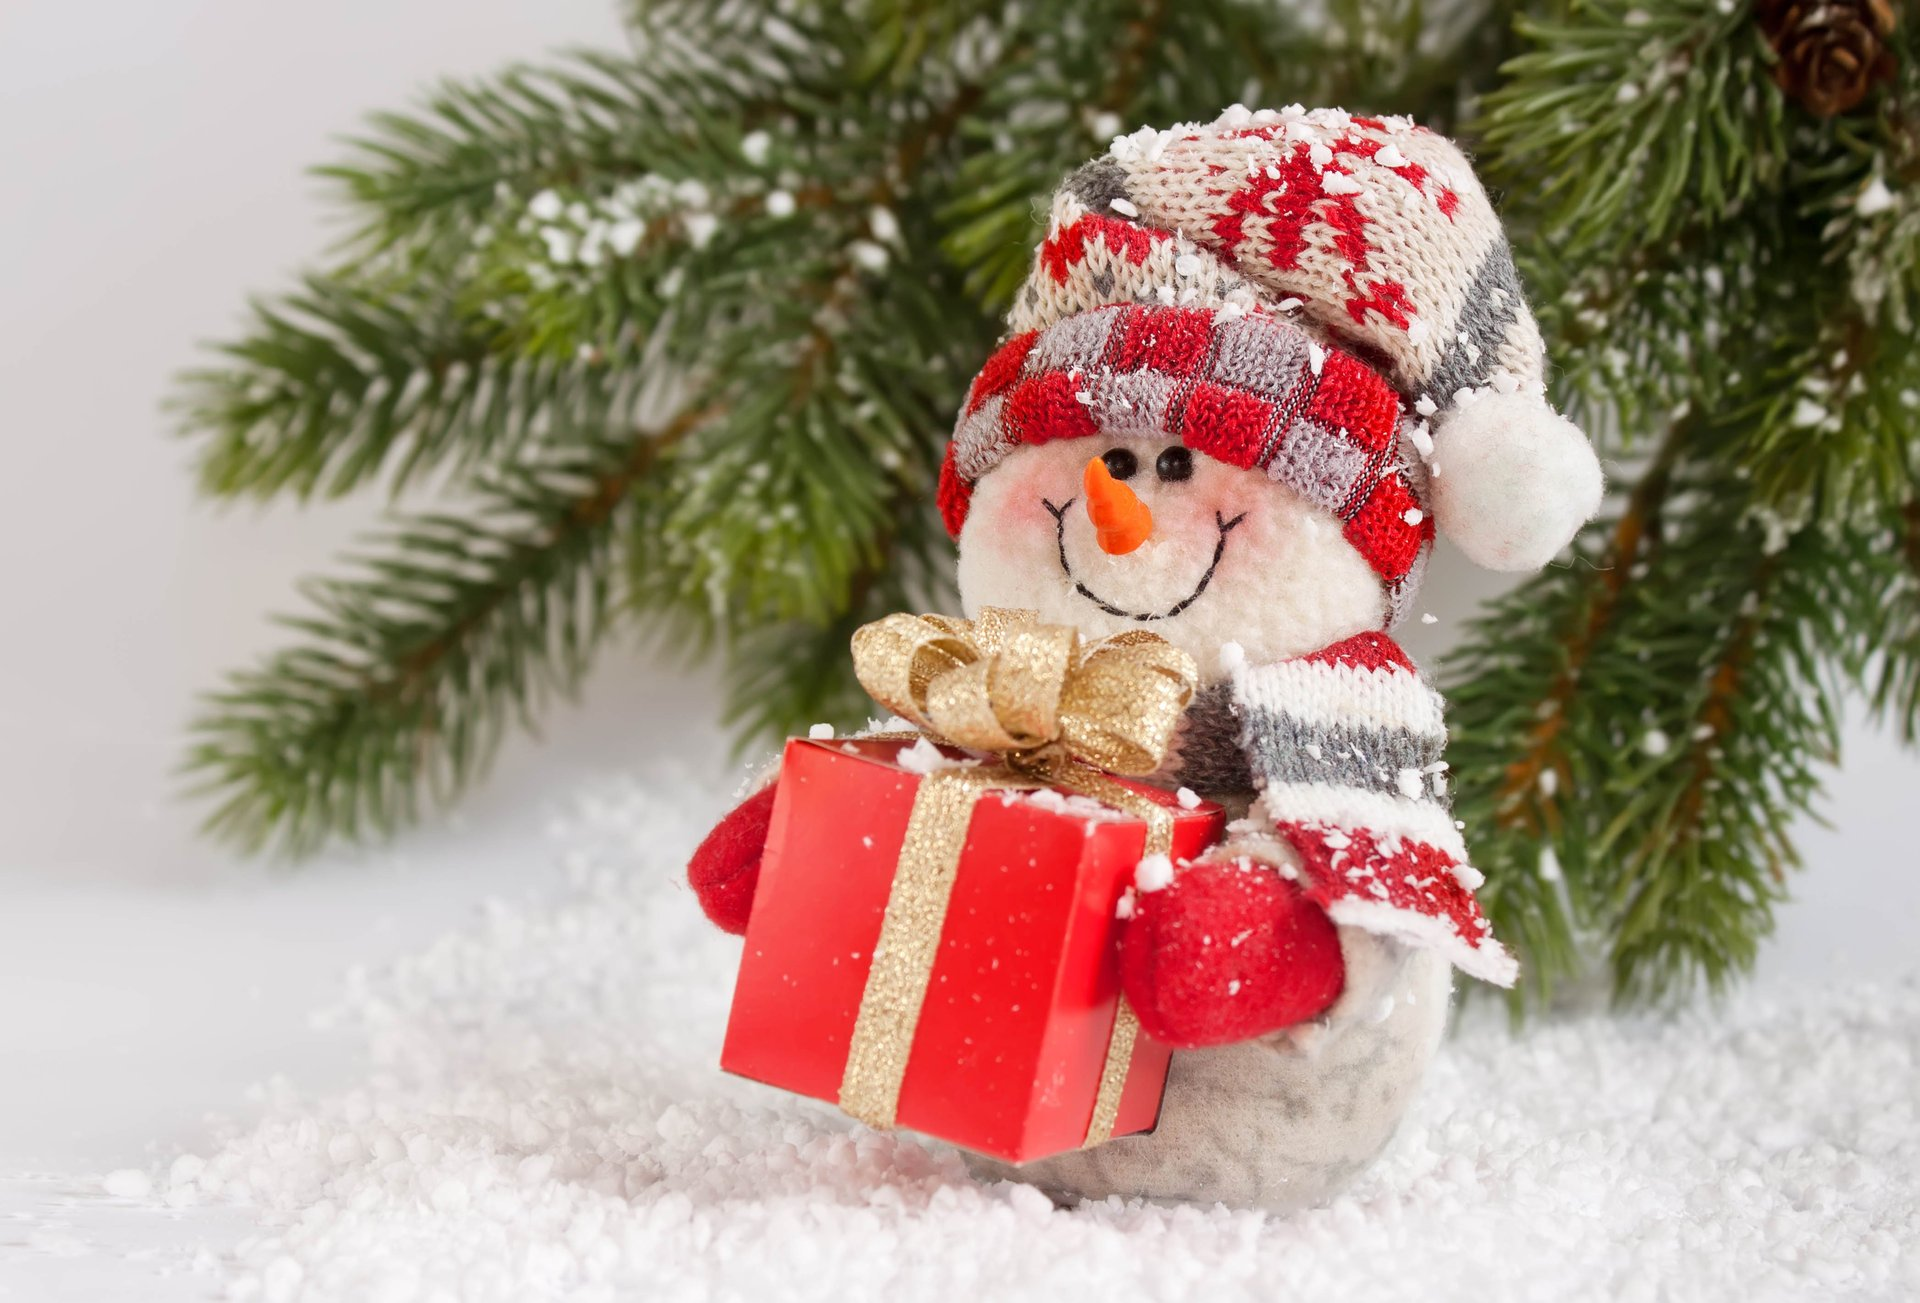 merry-christmas-snowman-snow-winter-gift